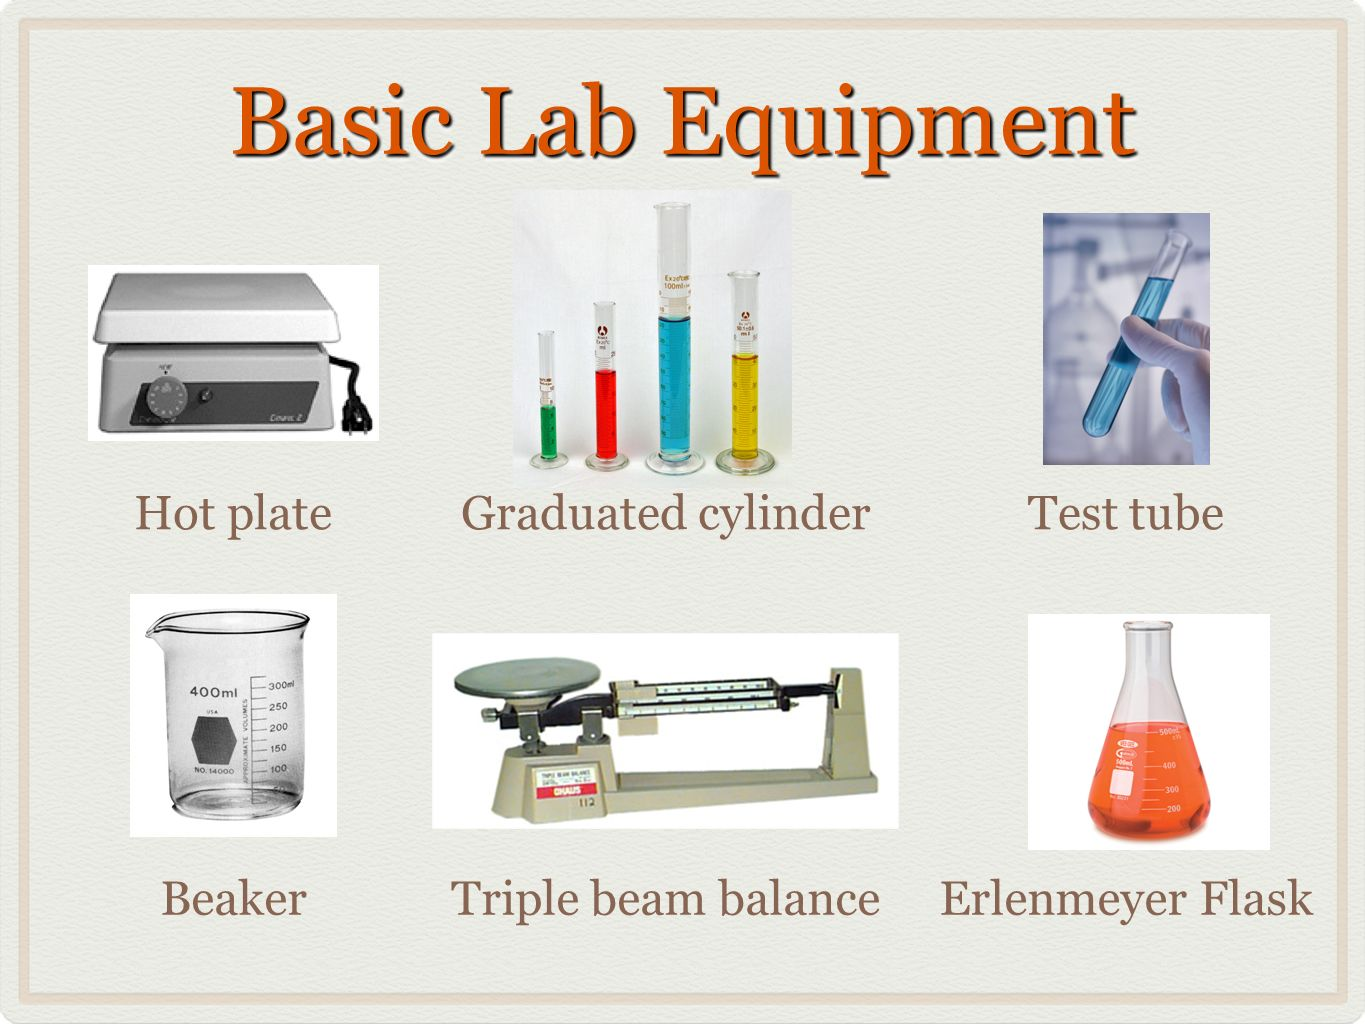 Basic Lab Equipment Beaker Graduated cylinderTest tubeHot plate Triple beam balanceErlenmeyer Flask